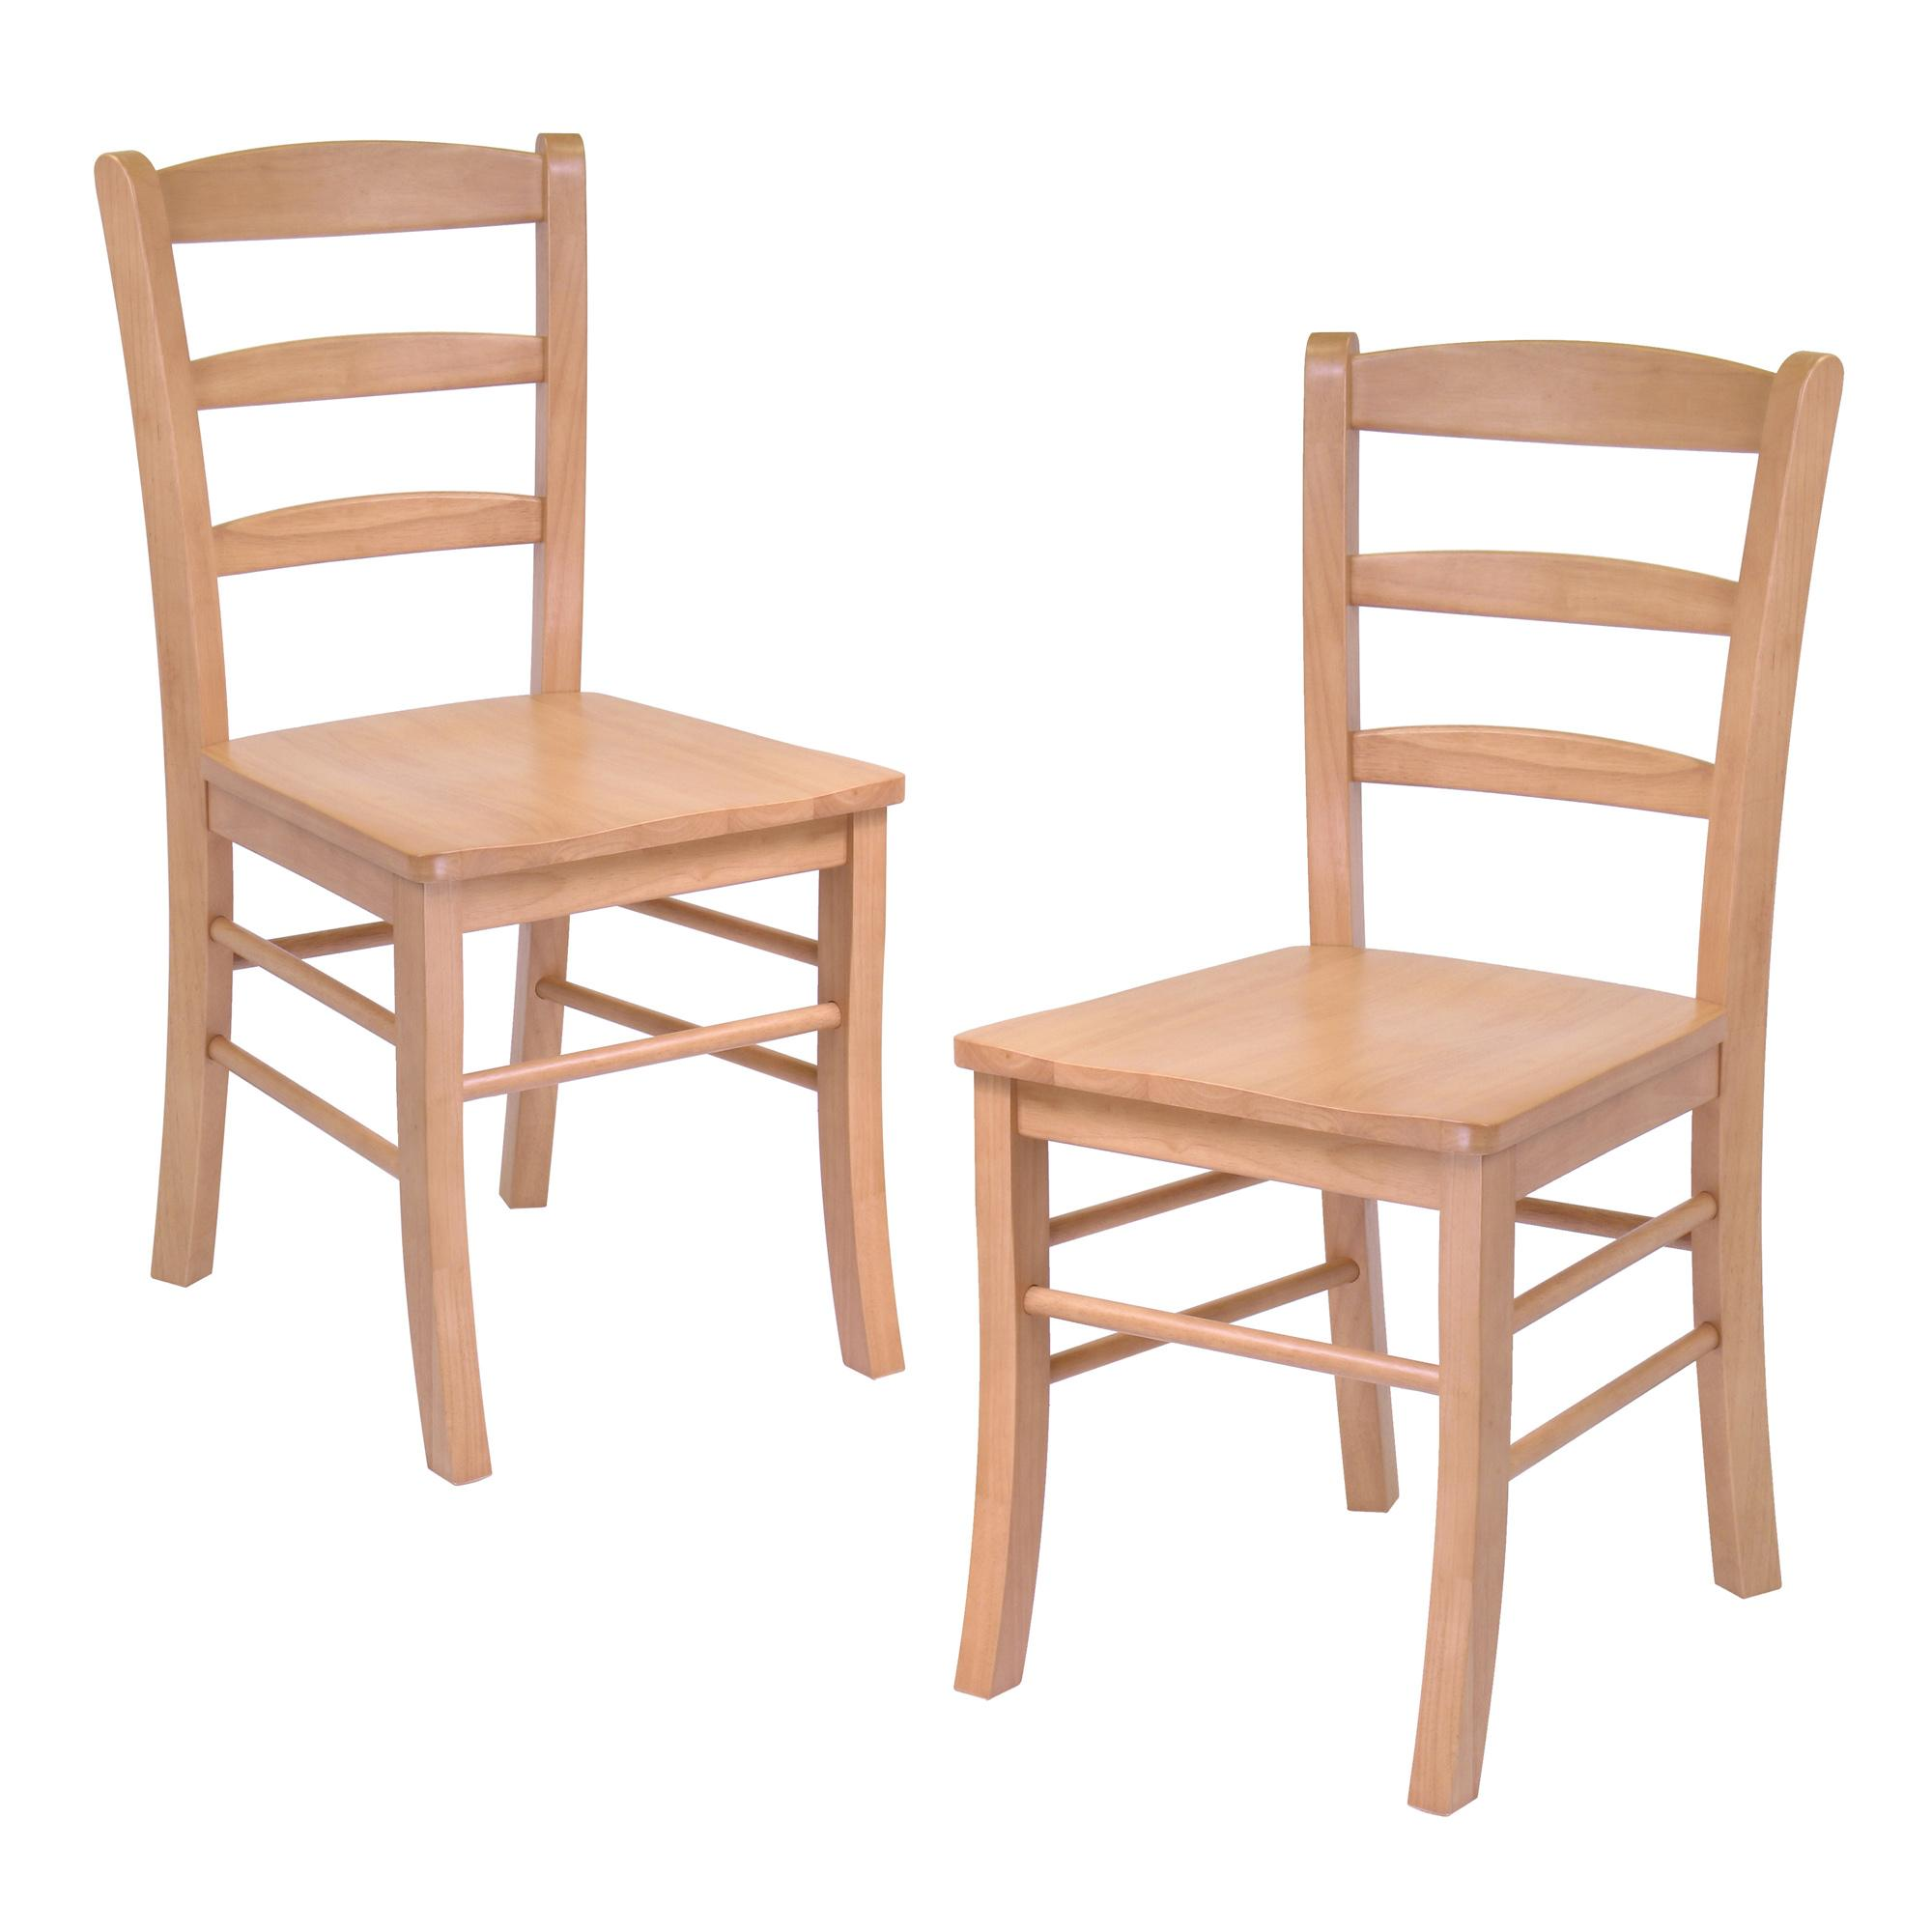 Winsome Hannah Dining Wood Side Chairs in Light Oak Finish